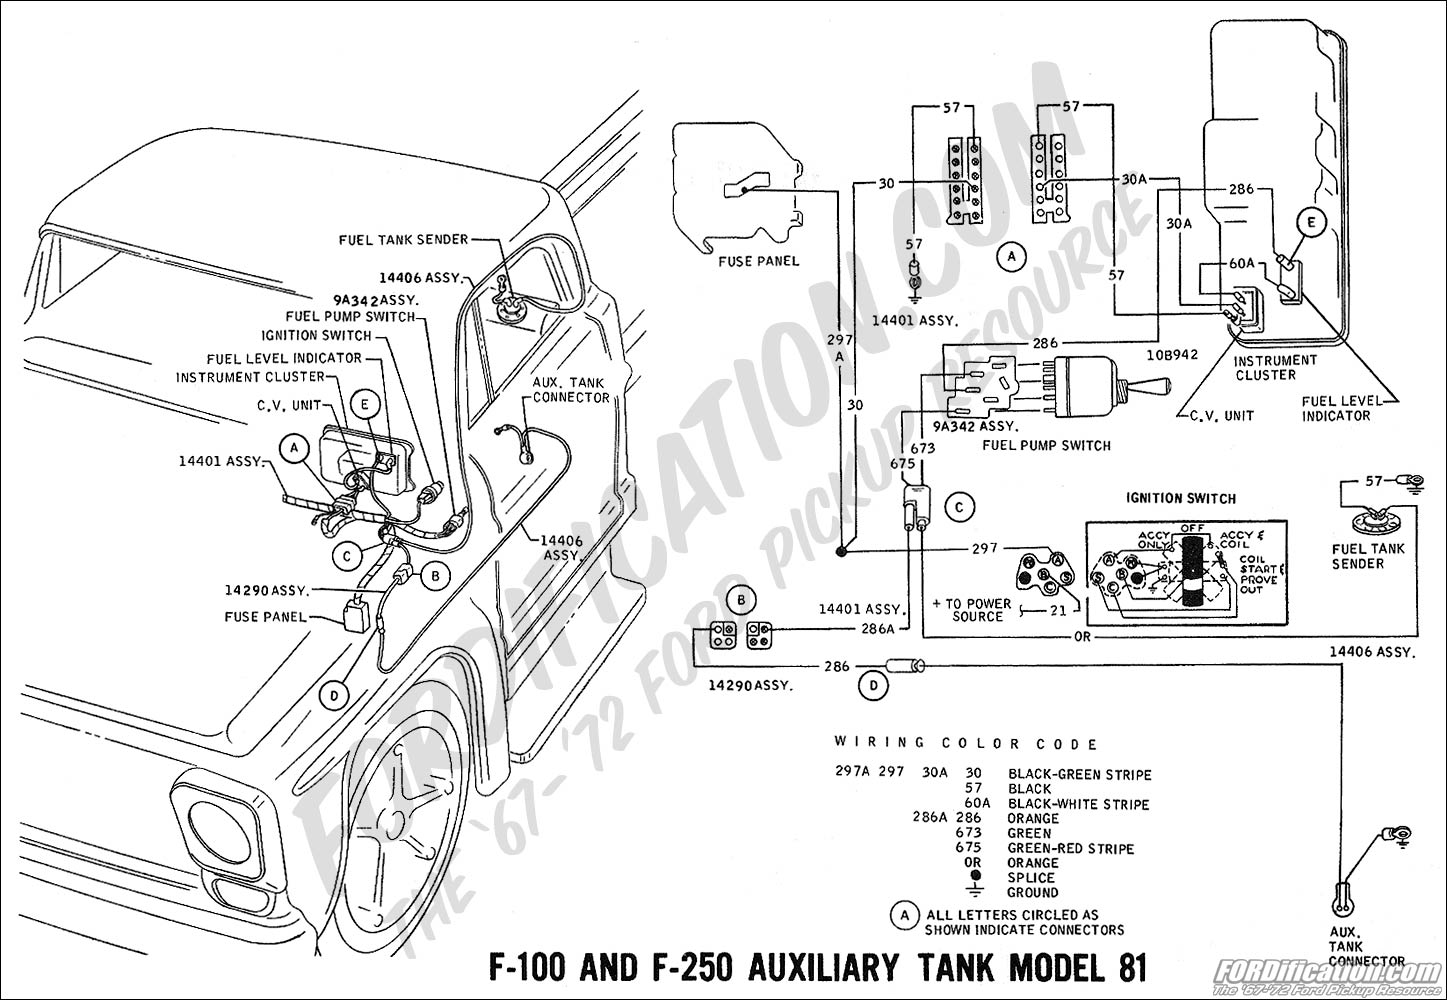 Diagram Chevy Truck Wiring Diagram 87 Chevy Wiring Diagram 2000 Chevy